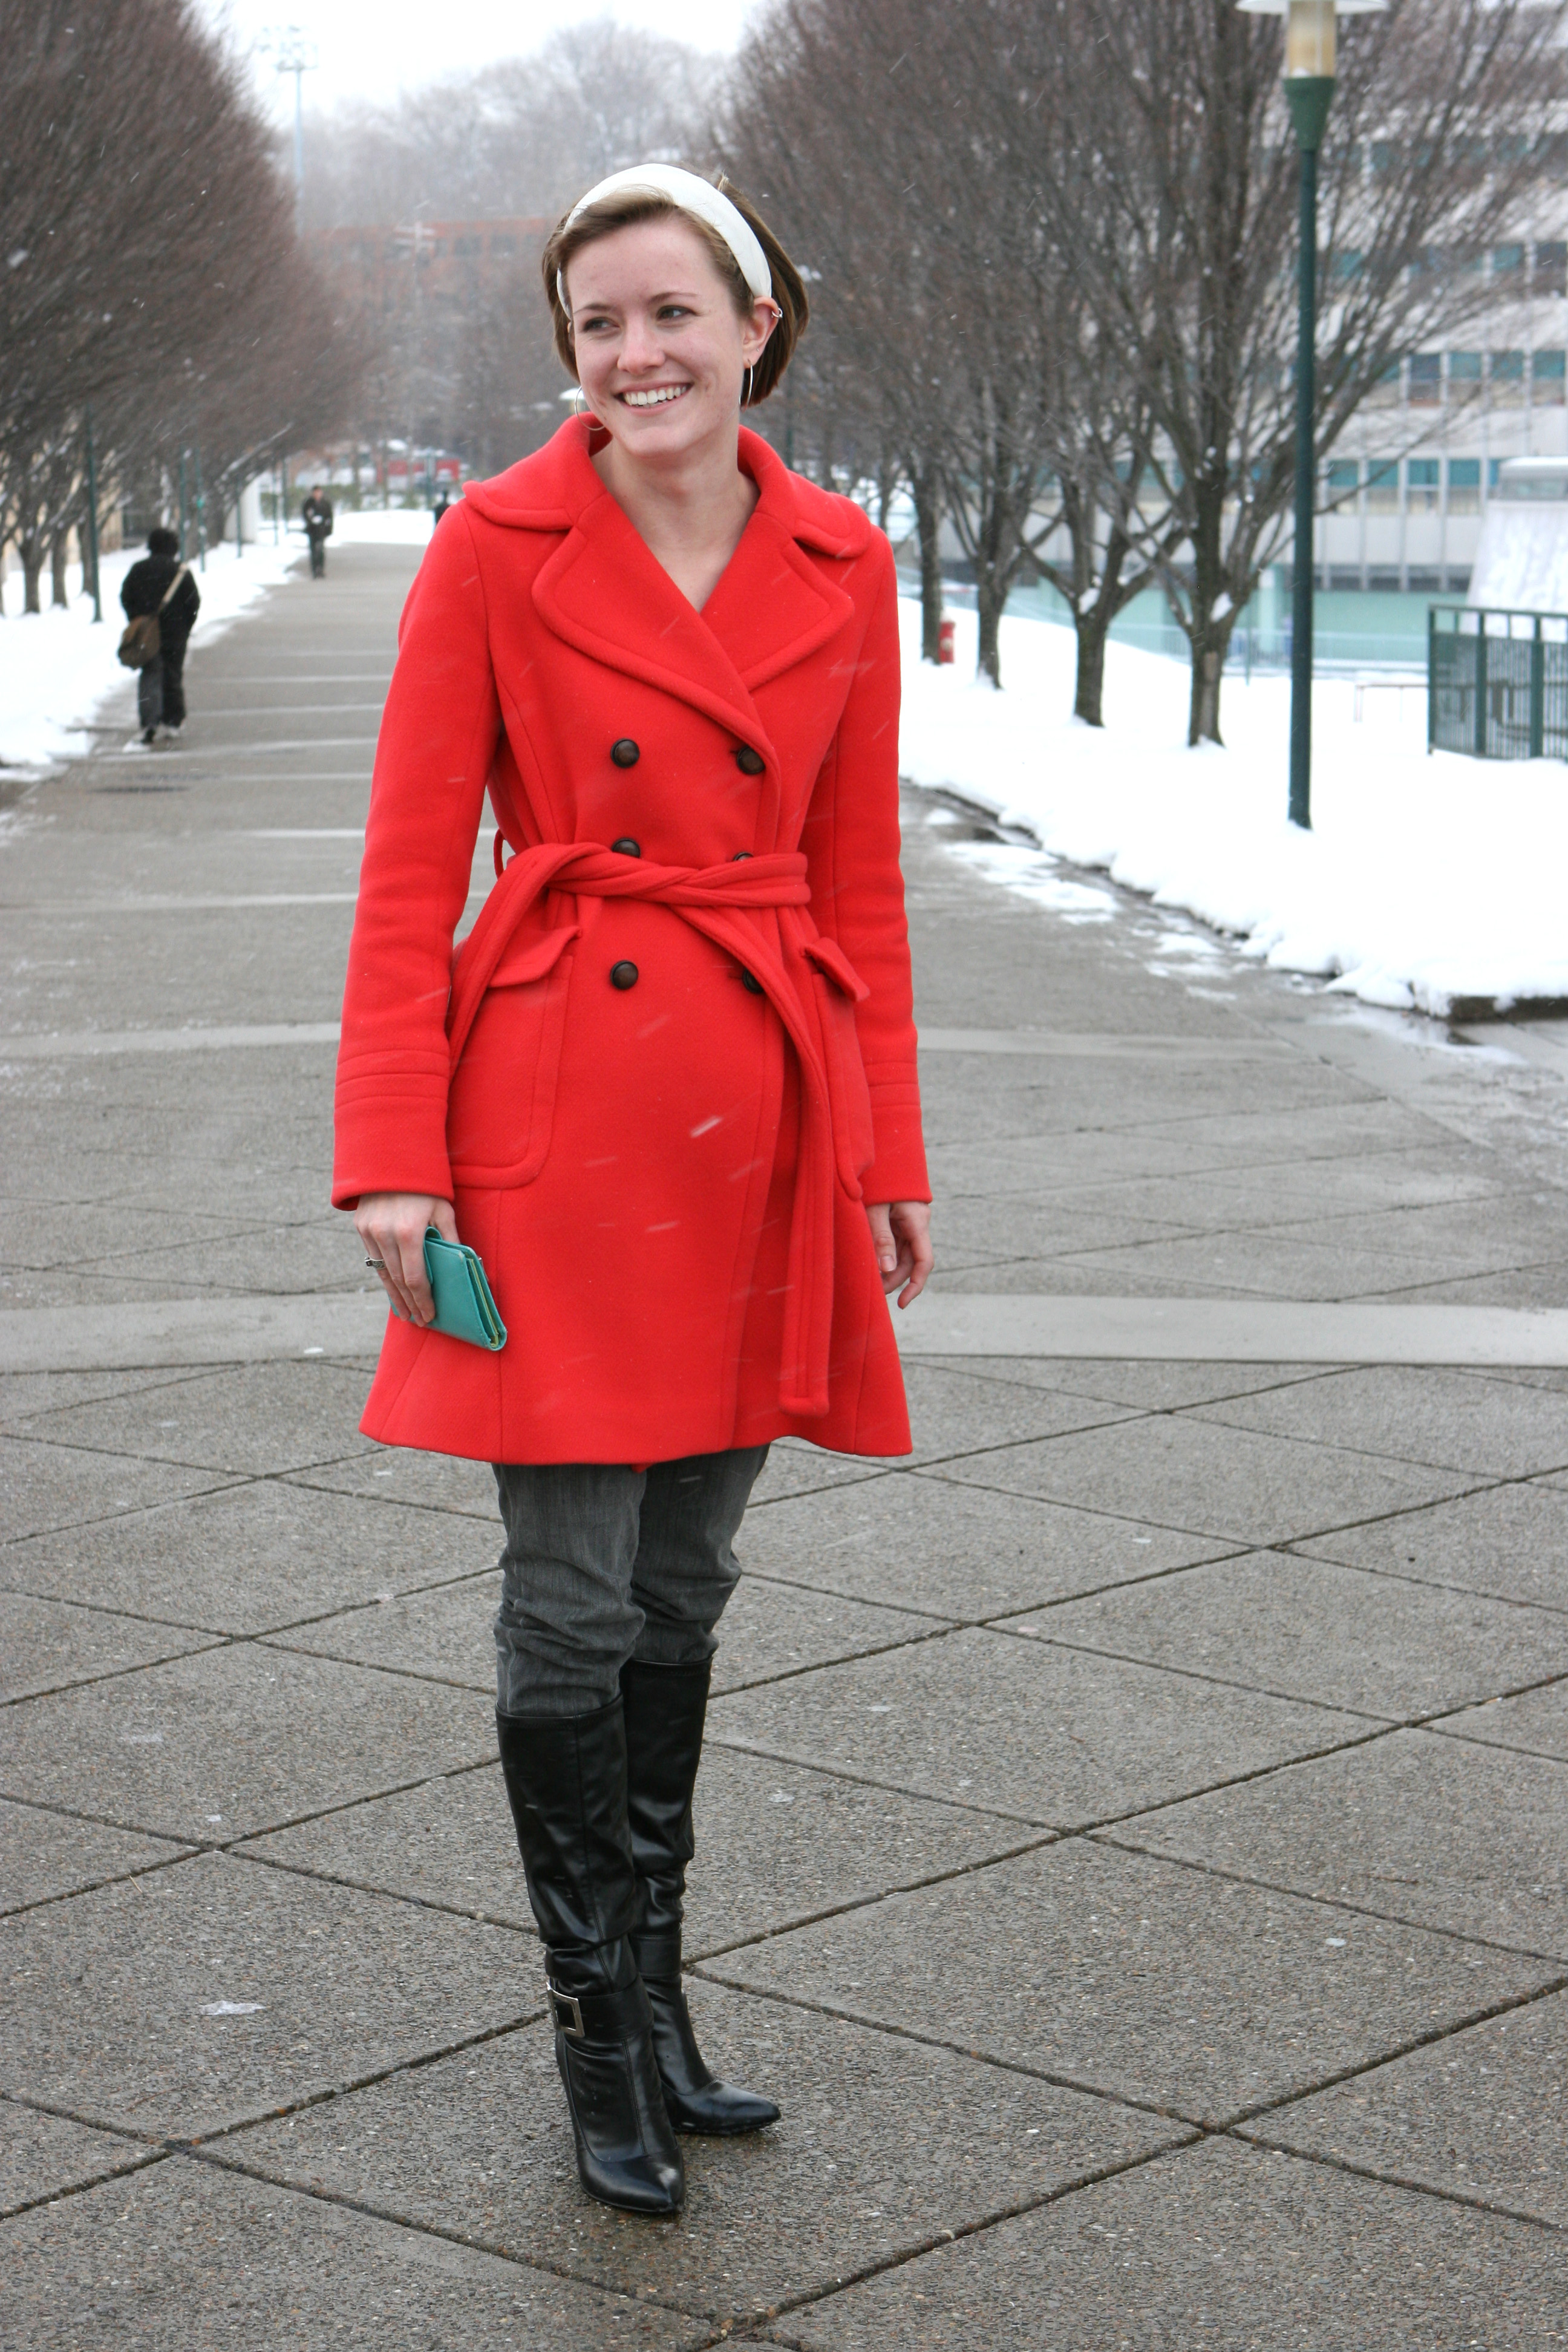 Karen Branick adds a flash of color to her look by wearing a bright orange winter coat.